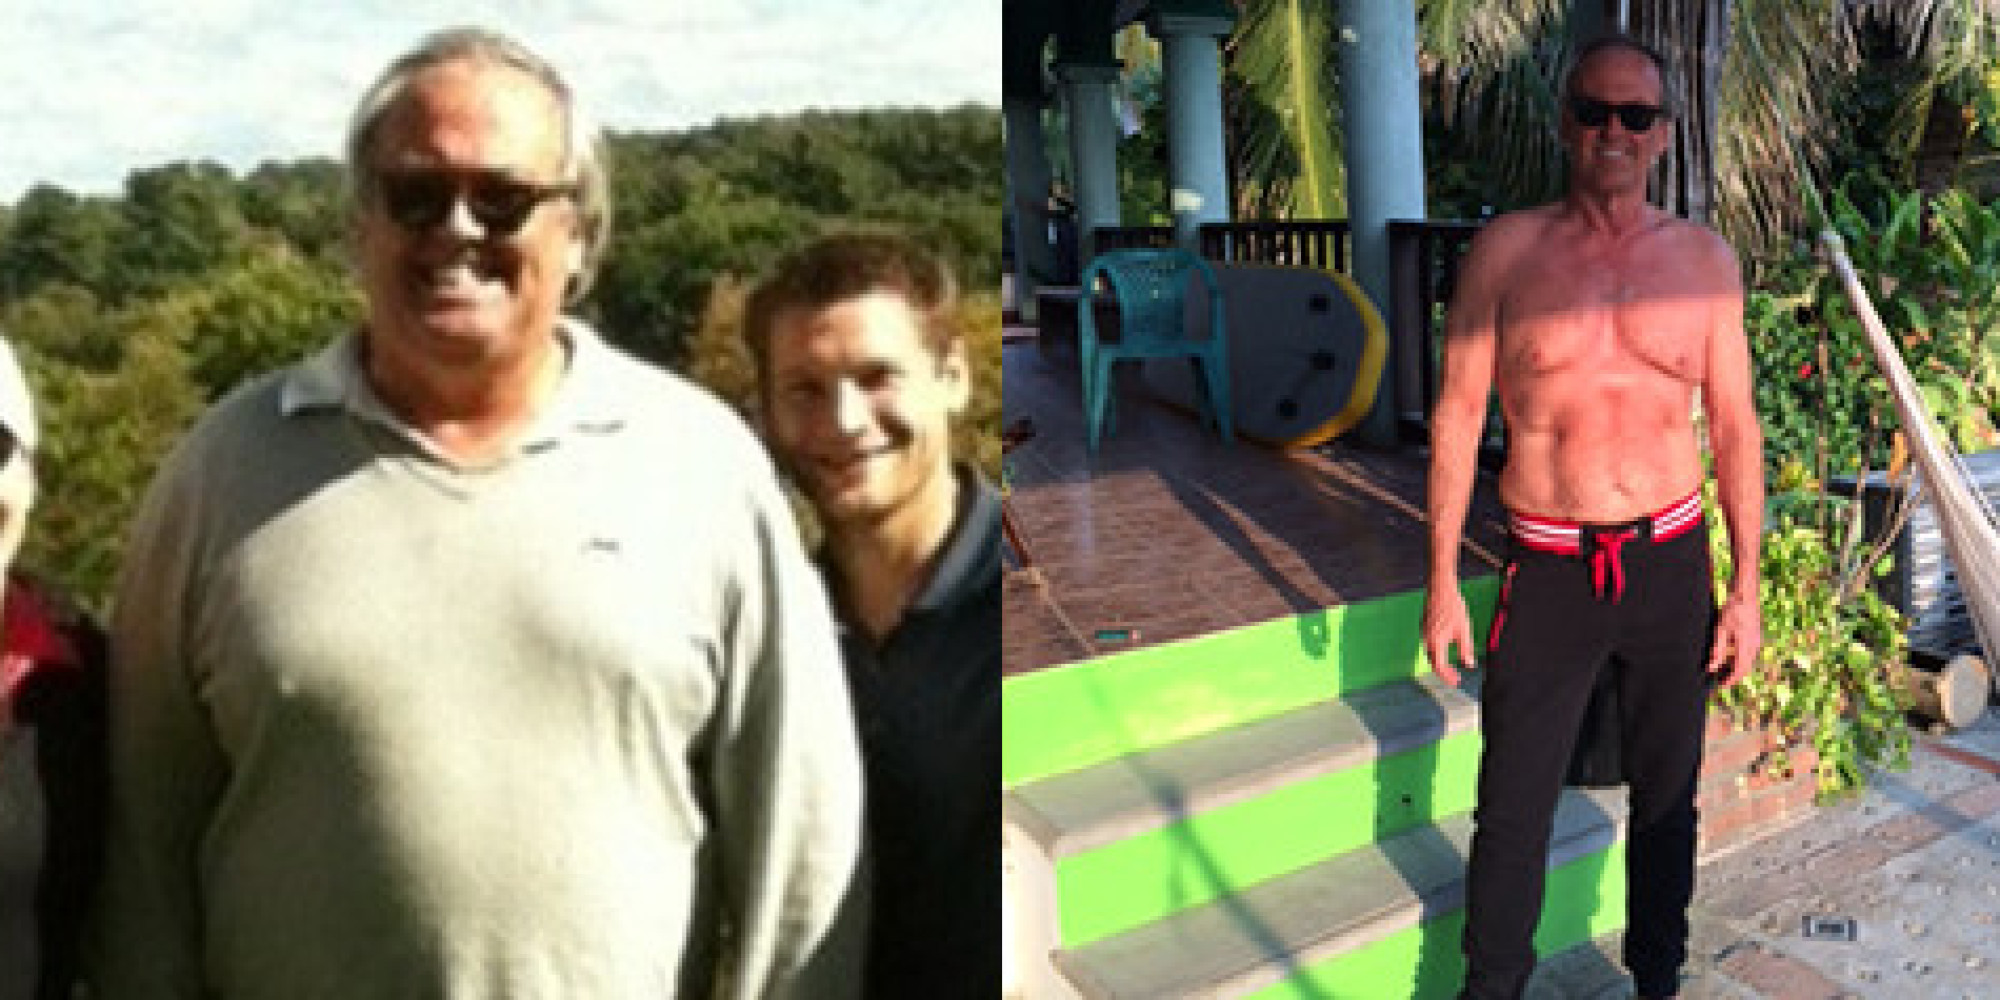 richard christy weight lose app ~ The Fat Loss Programs